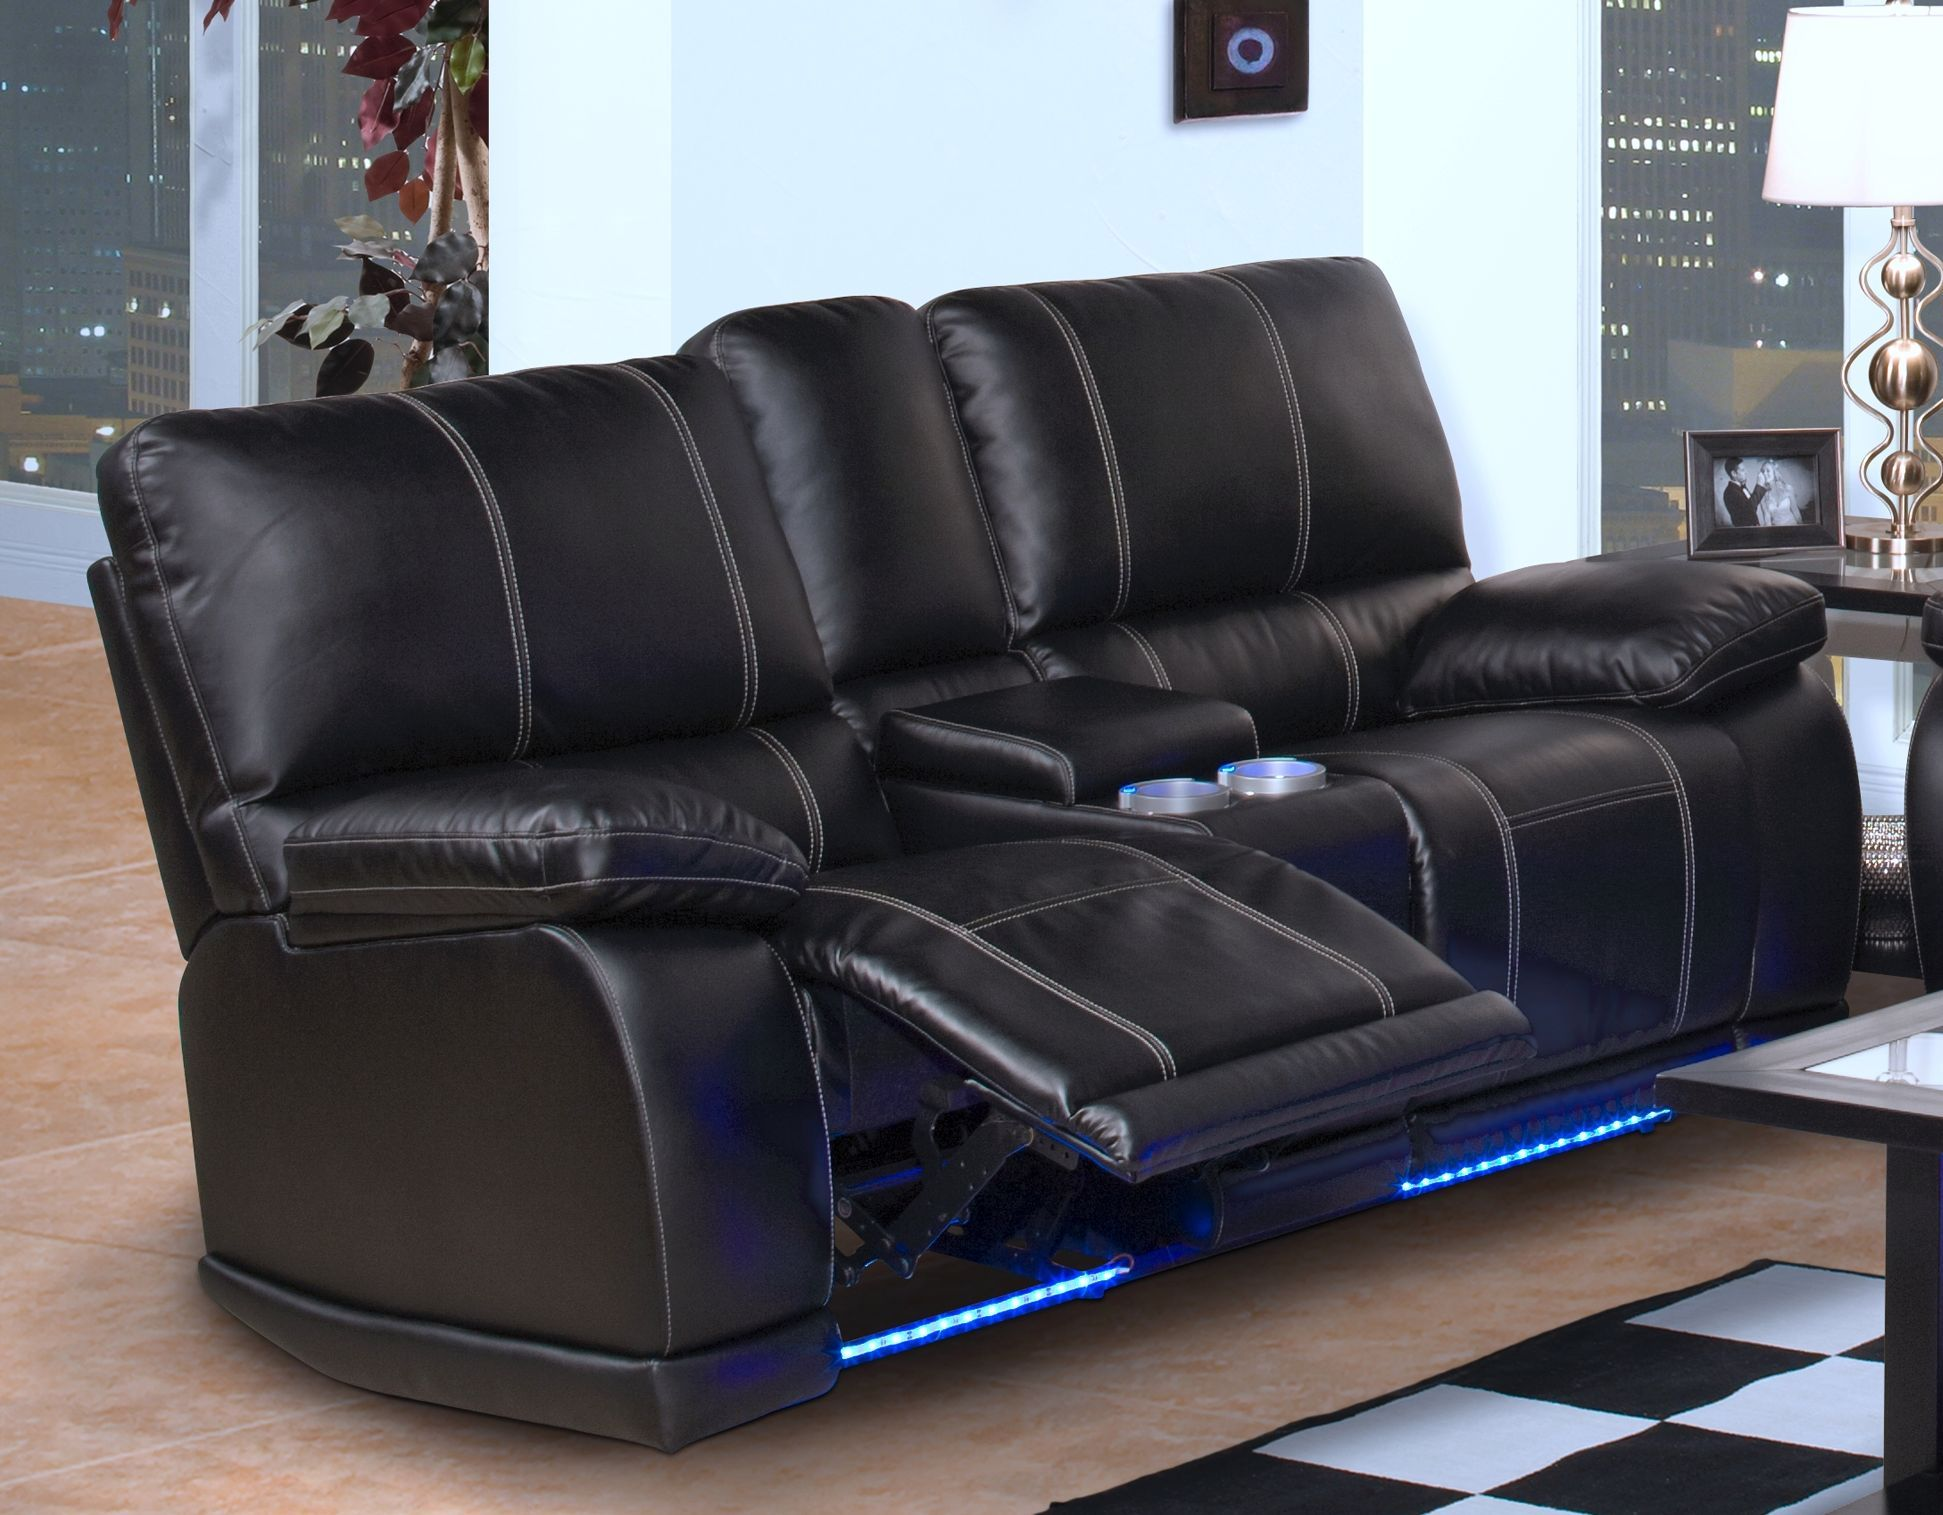 Amazing Recliner · Leather Reclining SofaLeather ...